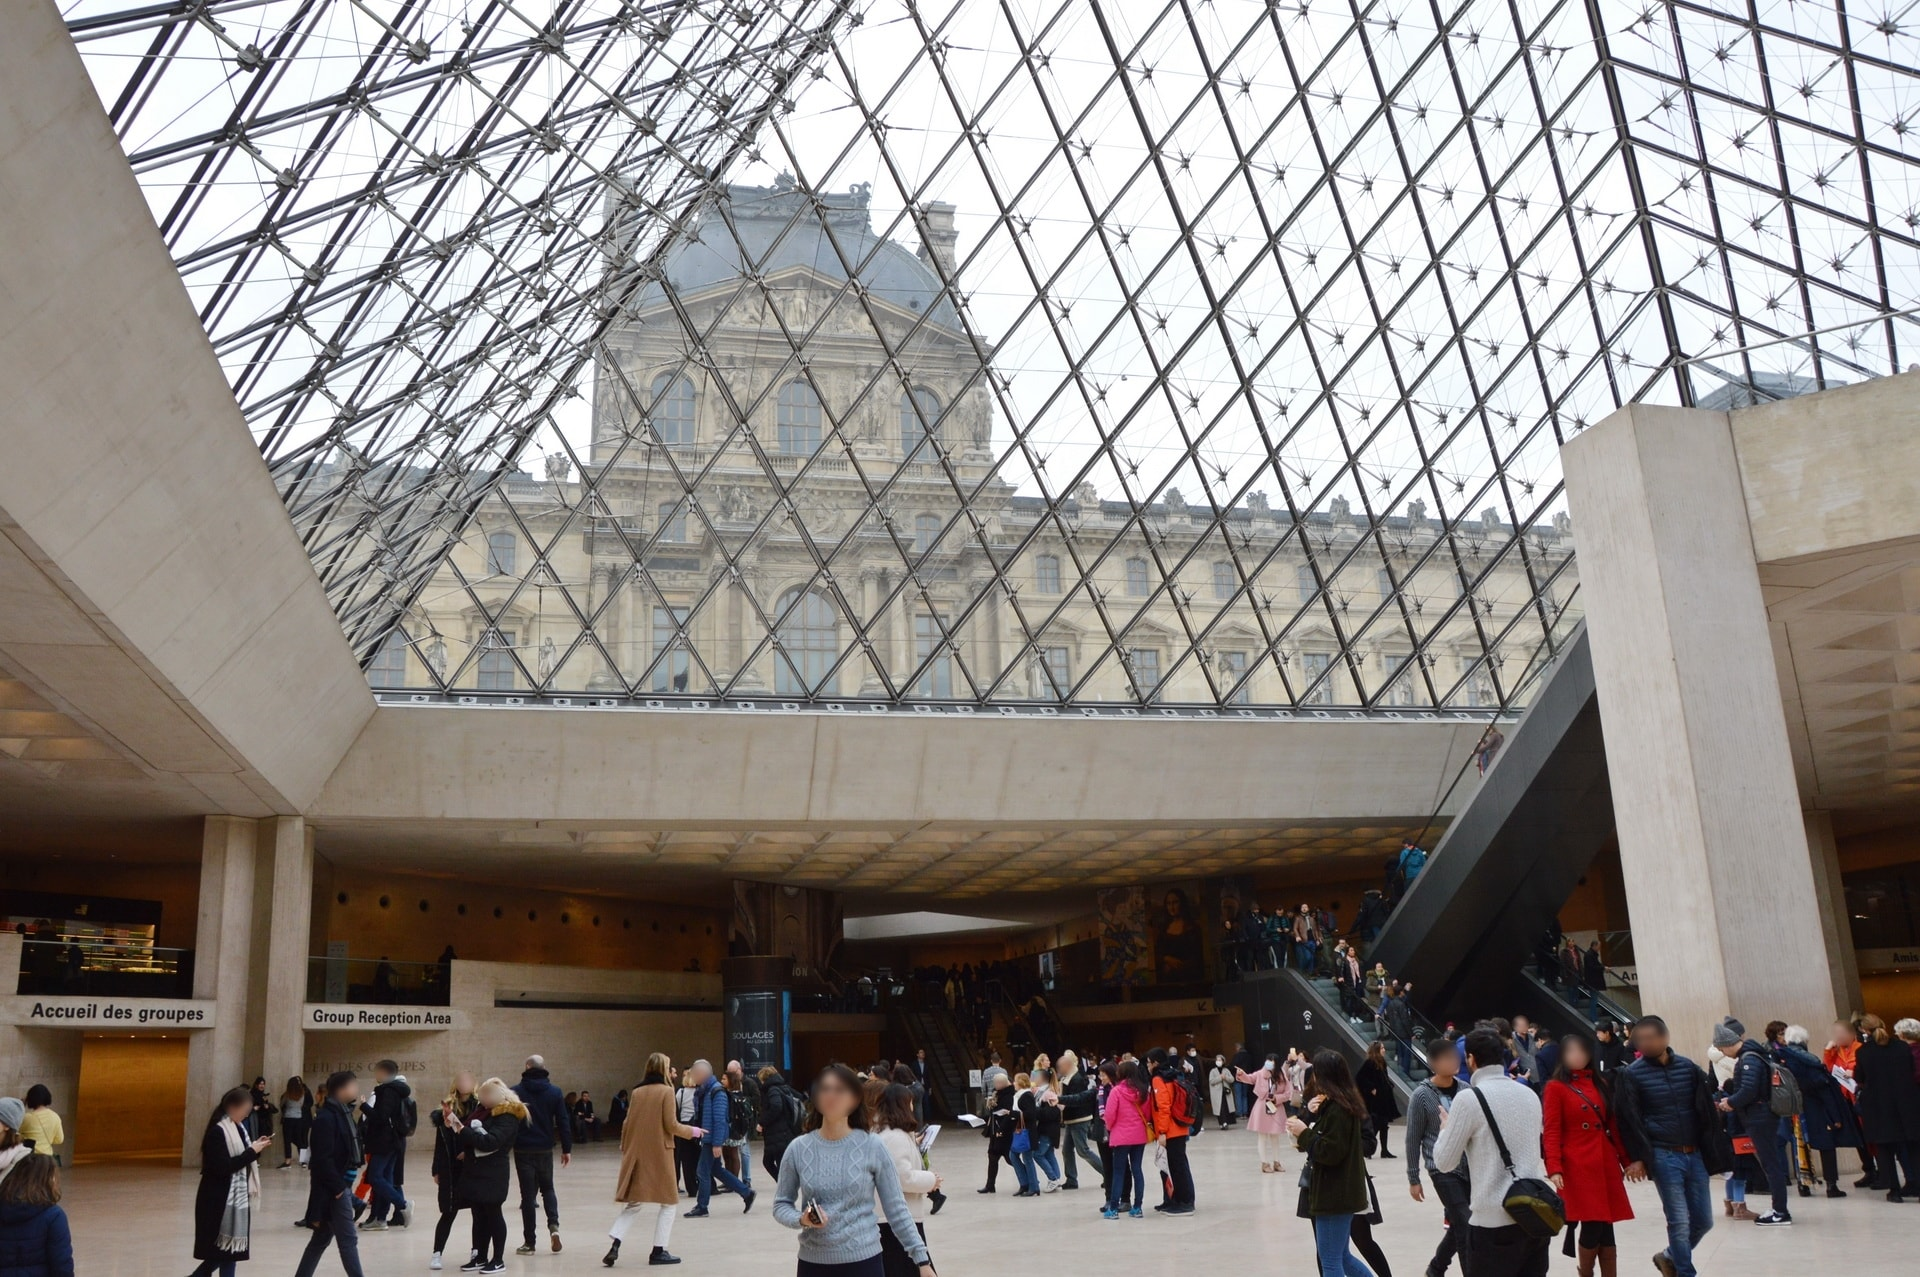 Under the unique Louvre Pyramid